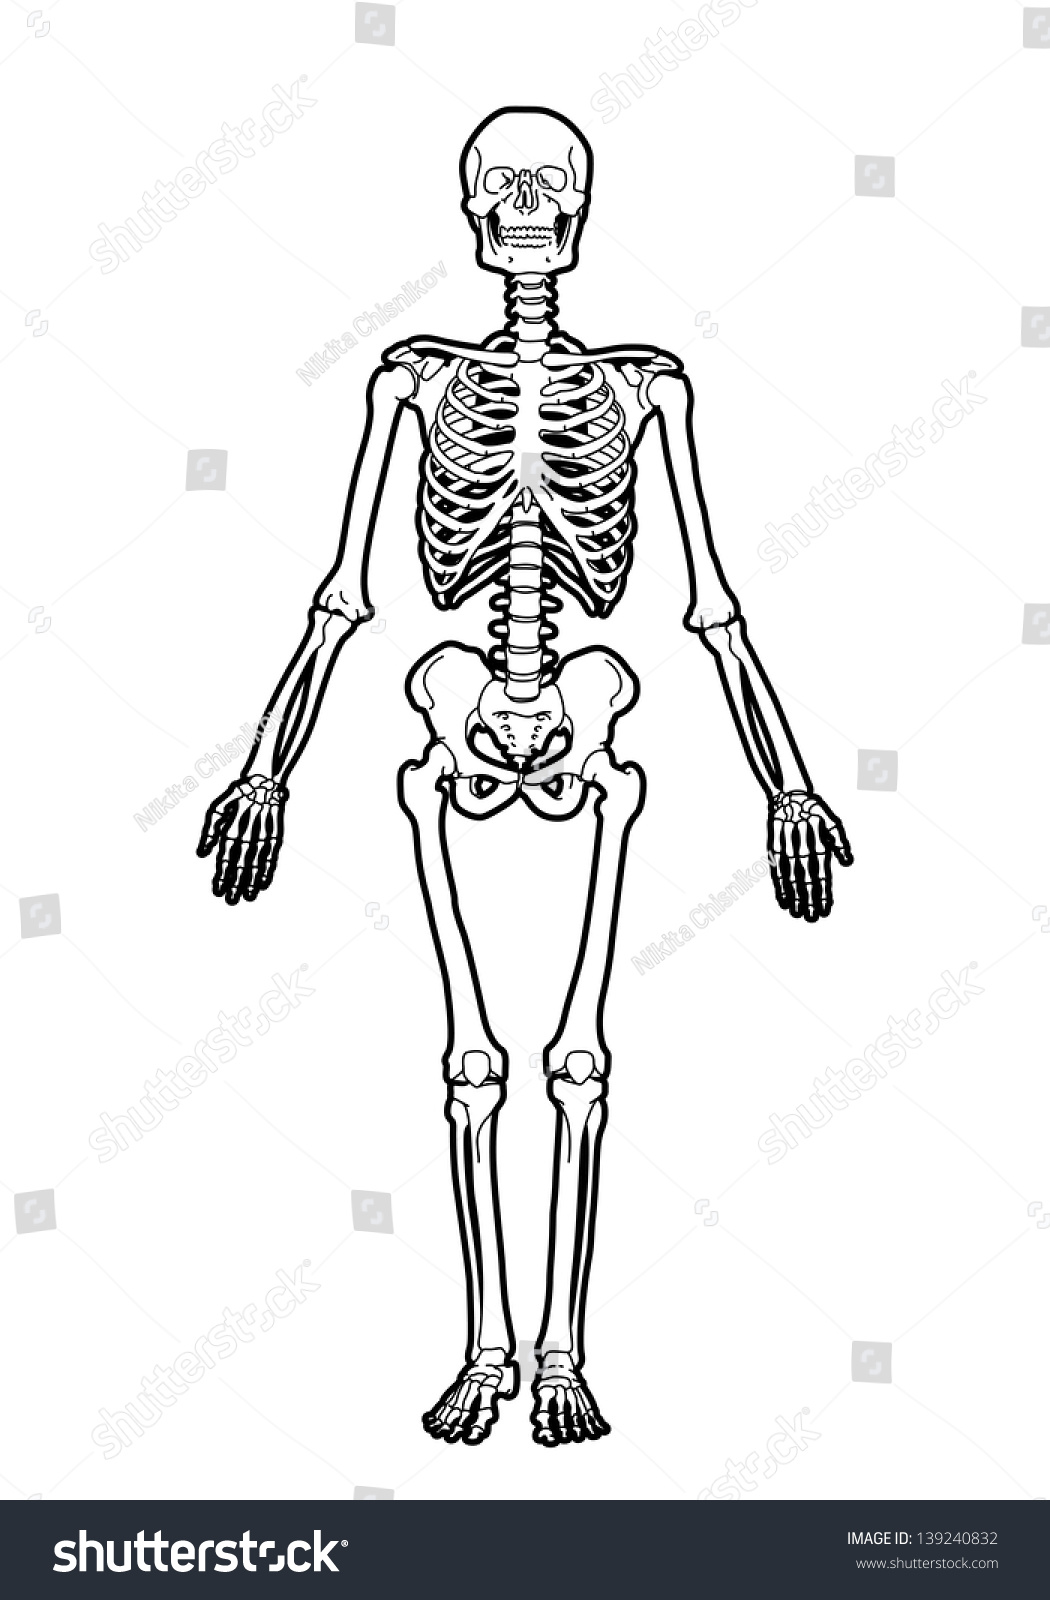 Outline Human Skeleton On White Background Stock Vector Illustration ...